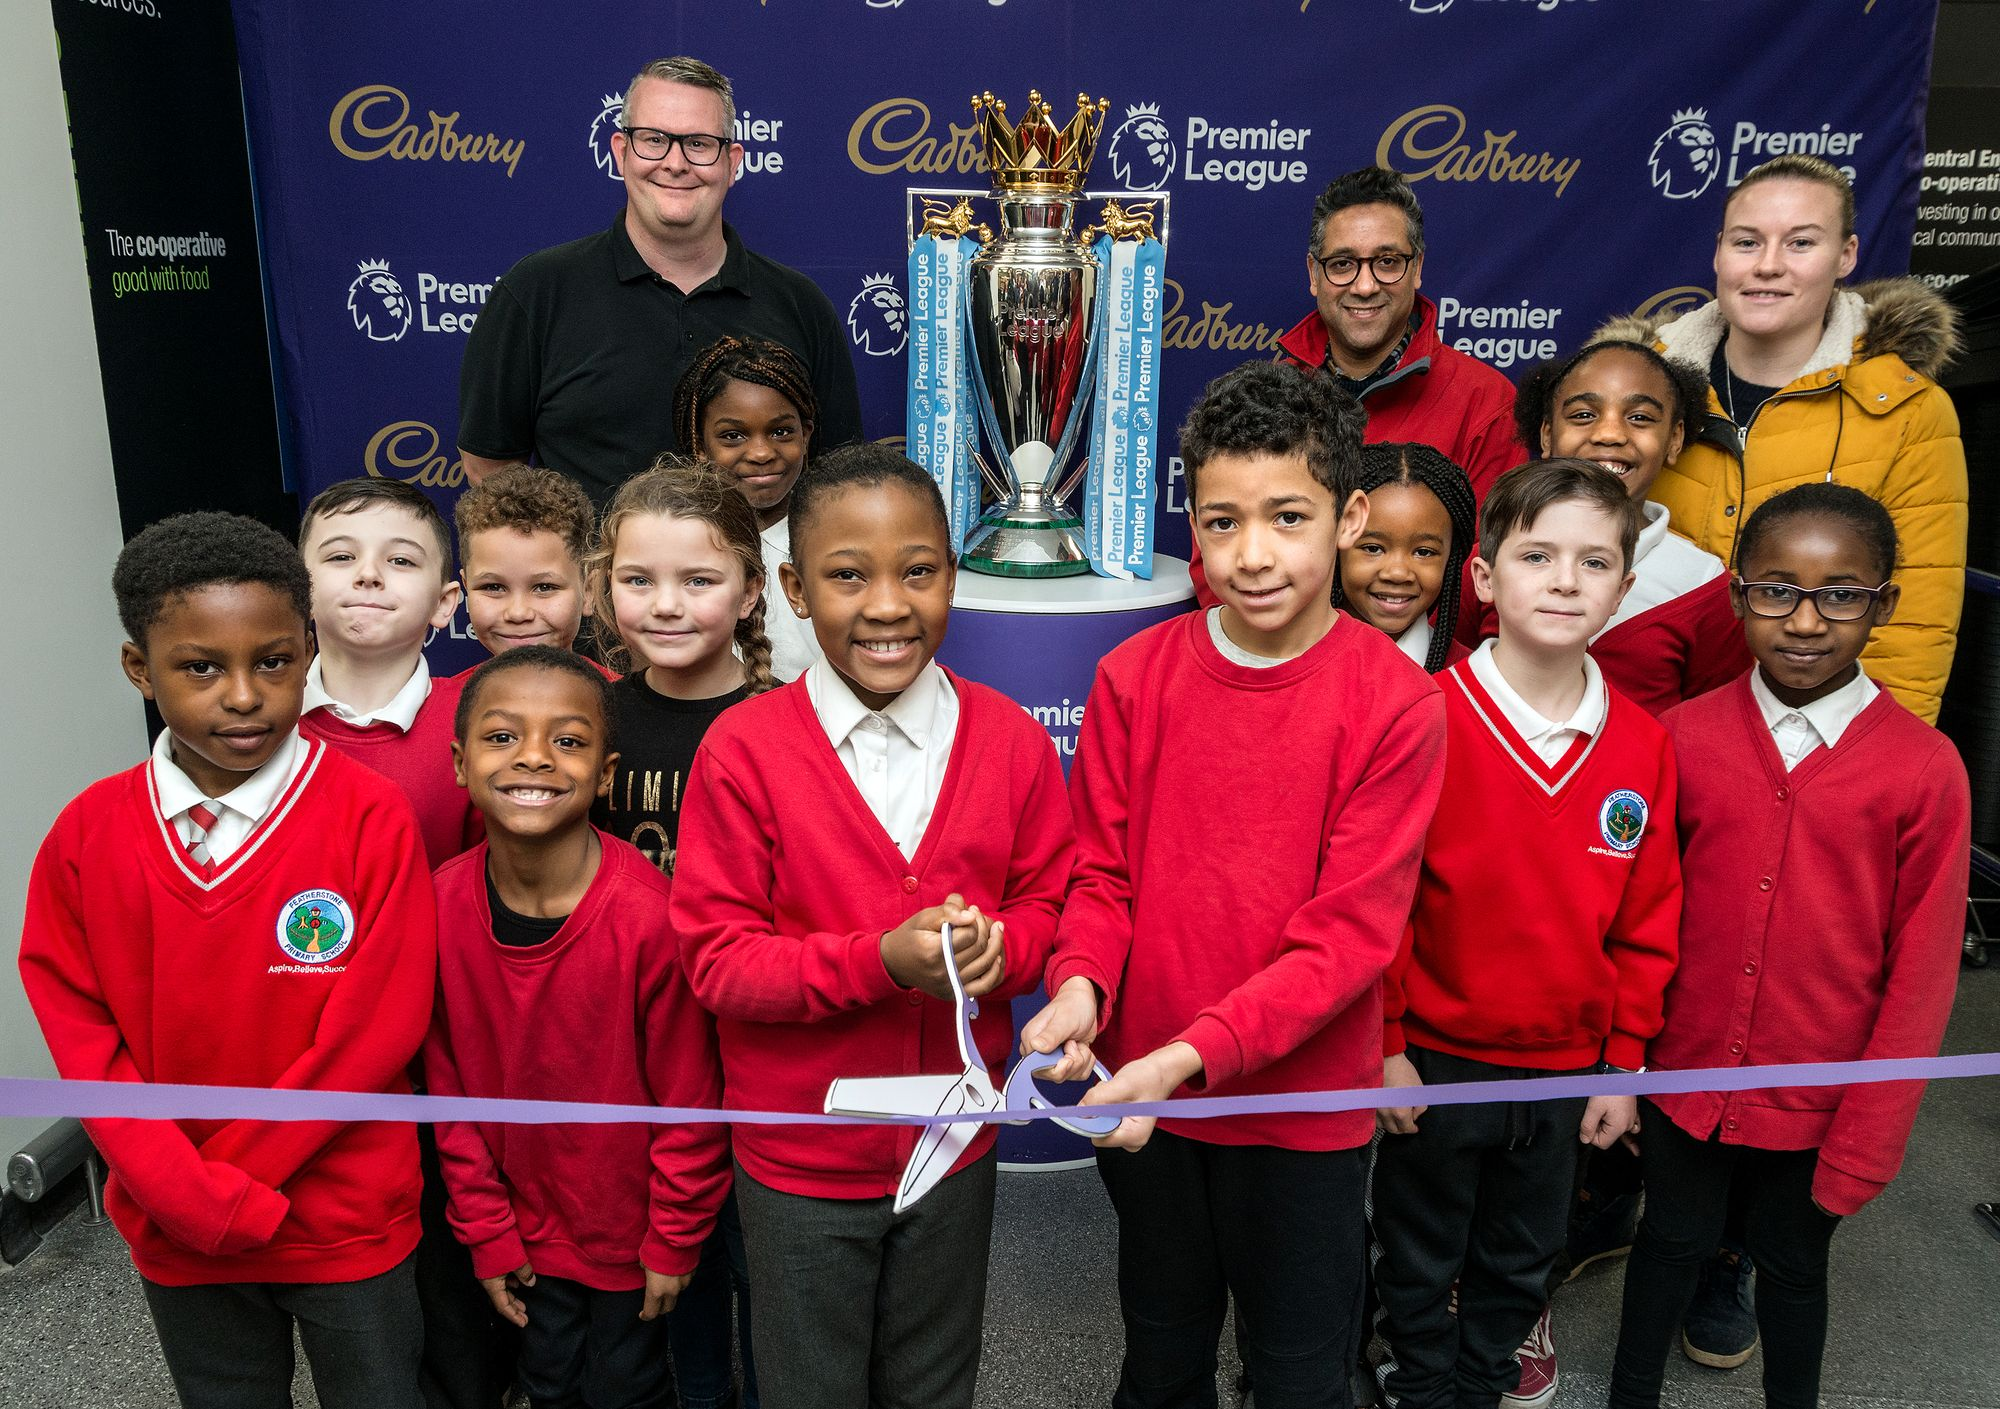 The Premier League comes to Birmingham thanks to Central England Co-operative